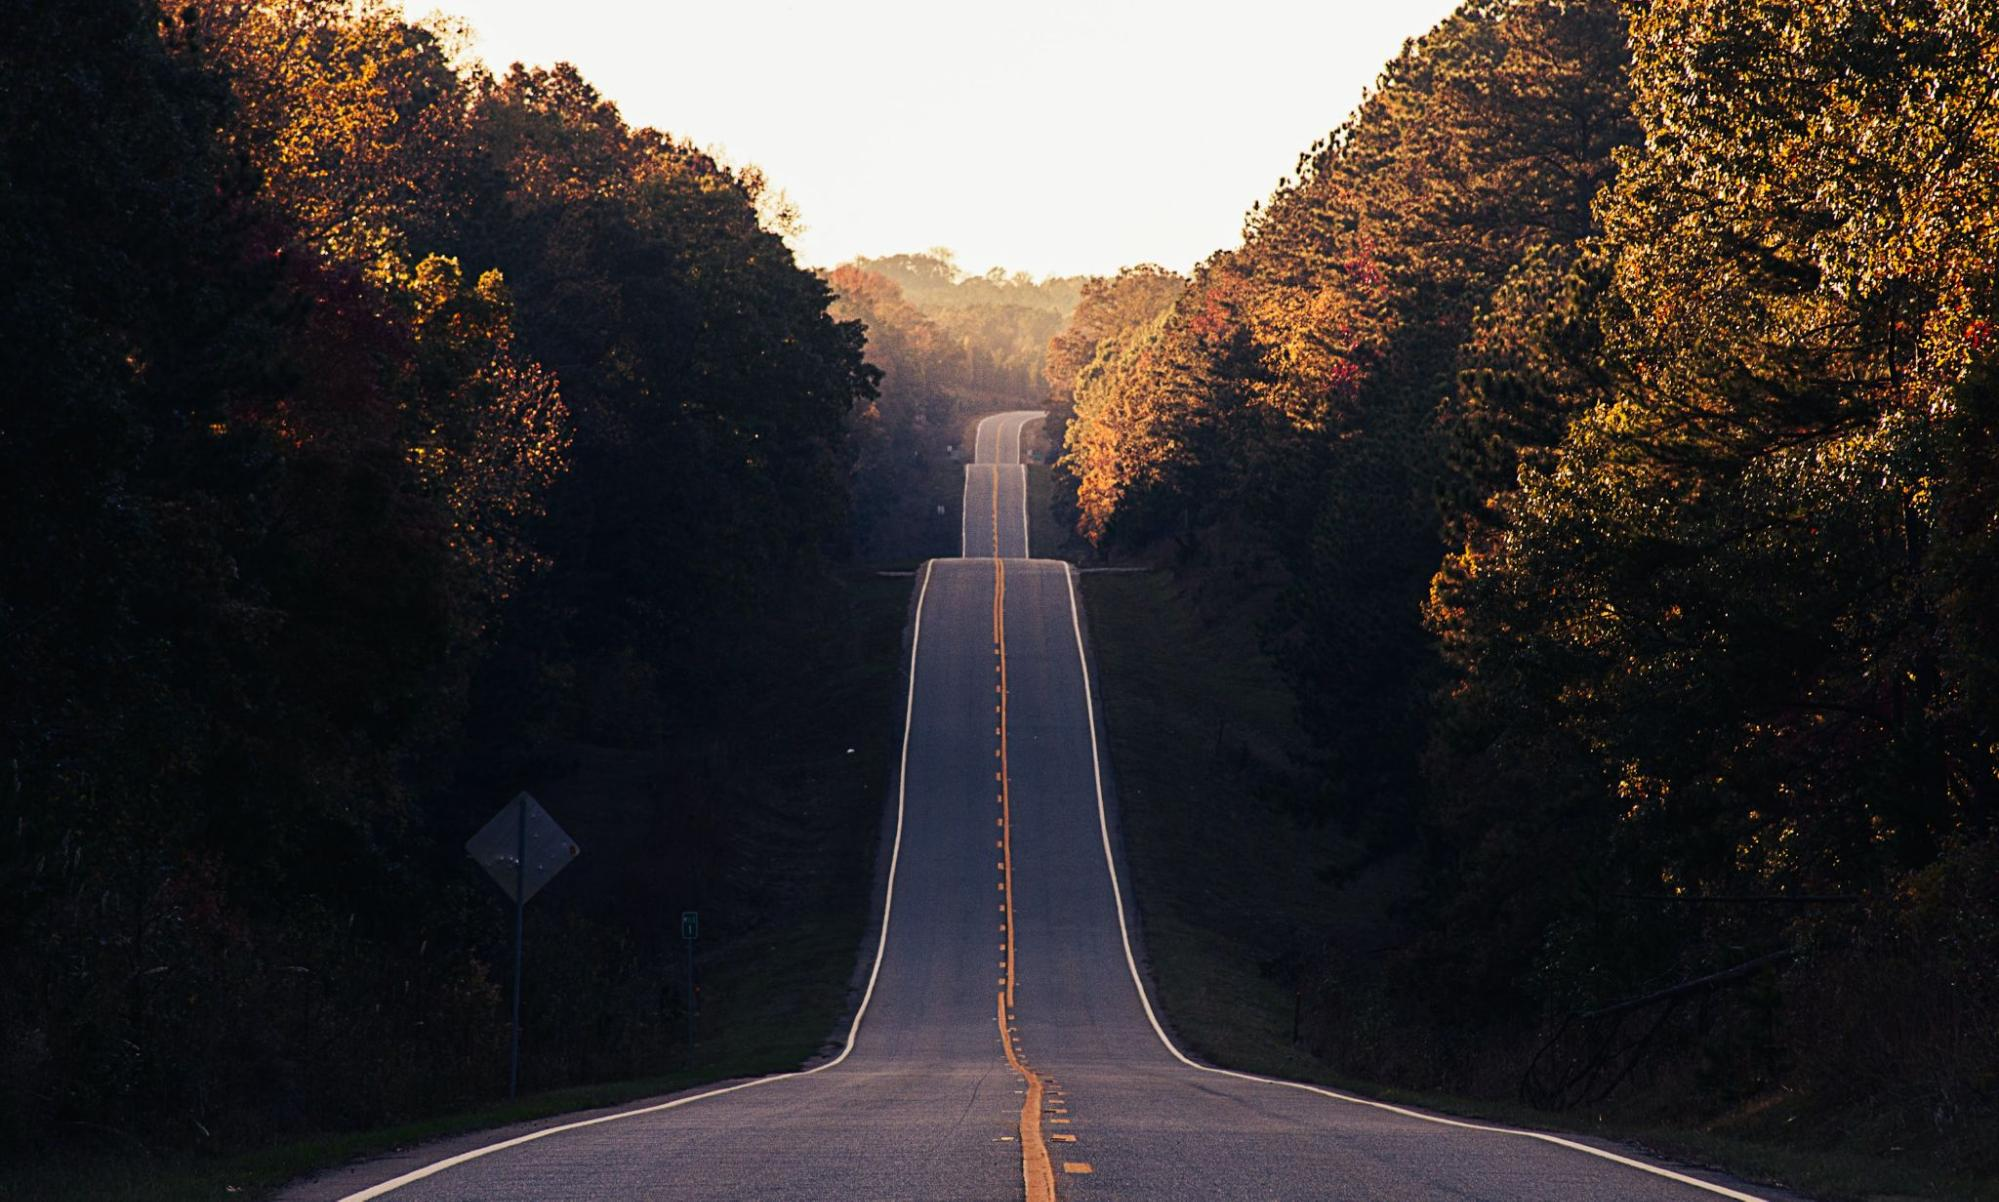 A long road through trees, enjoy fall activities in Franklin, TN and Brentwood, TN, family activities, adult activities and more!